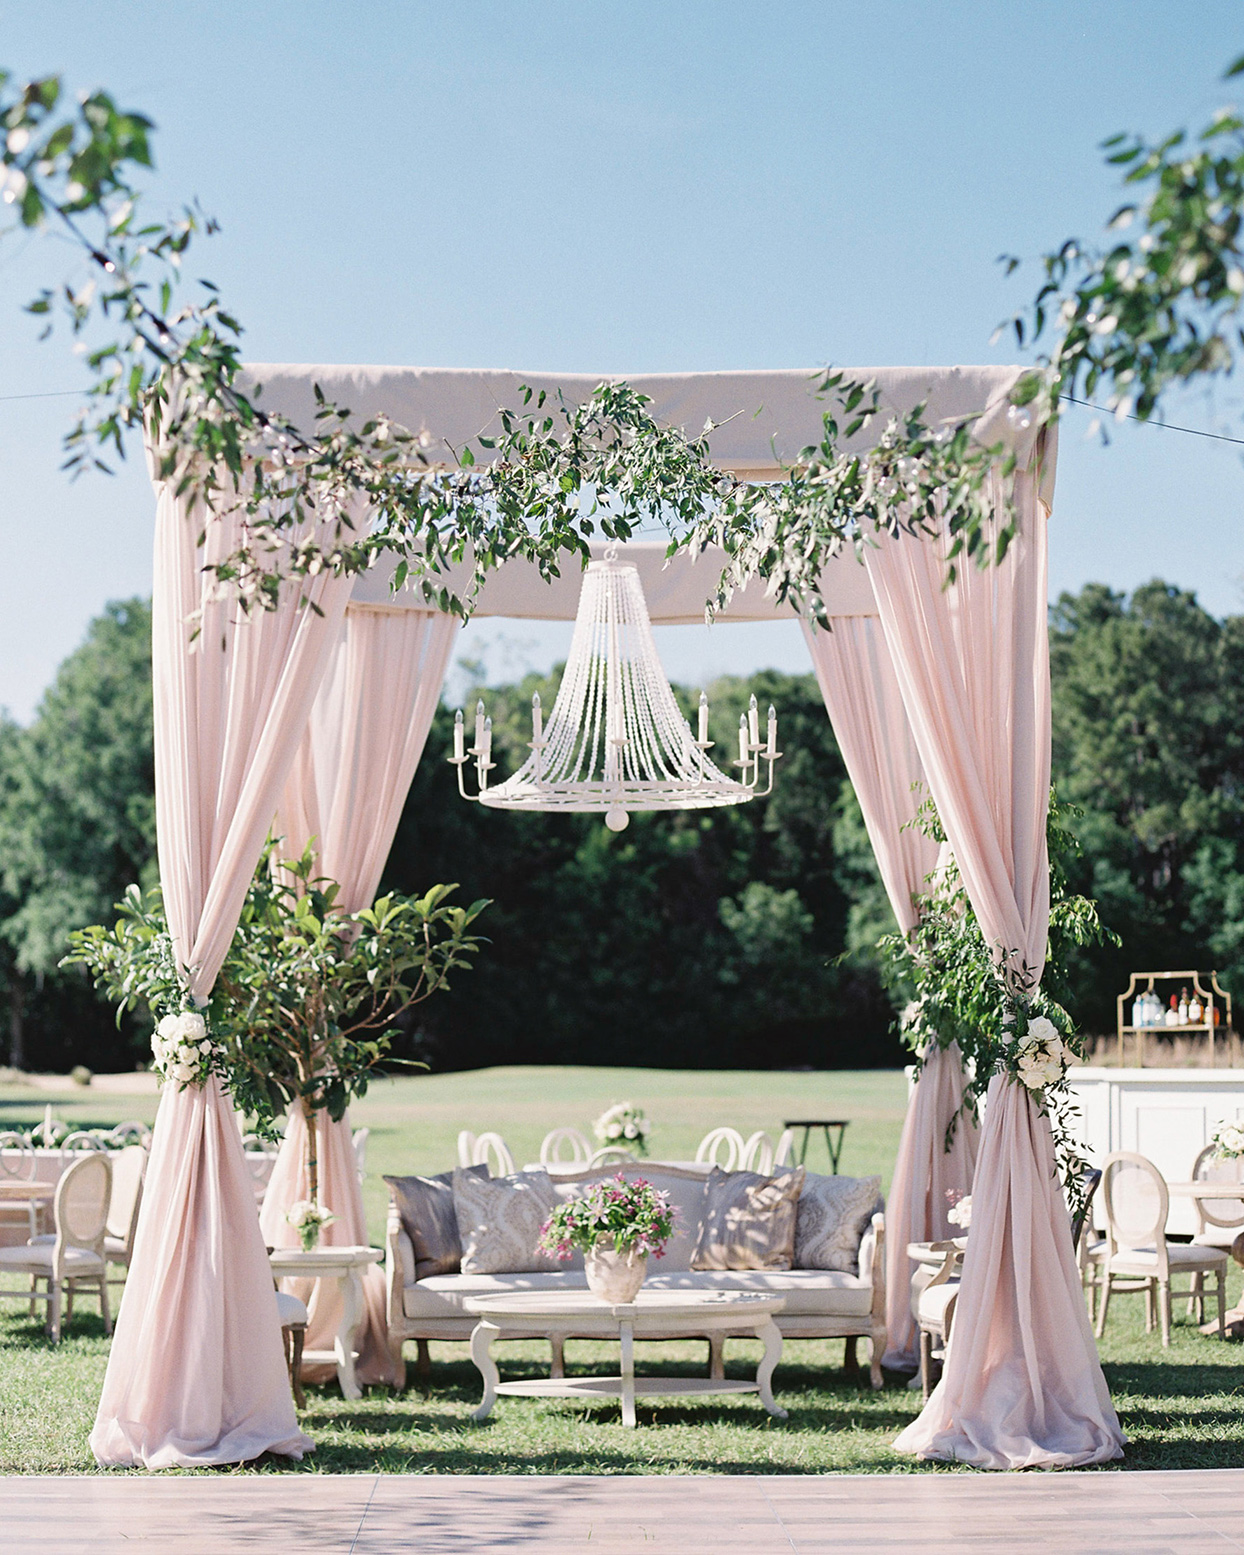 chelsea john wedding lounge with pastel tent